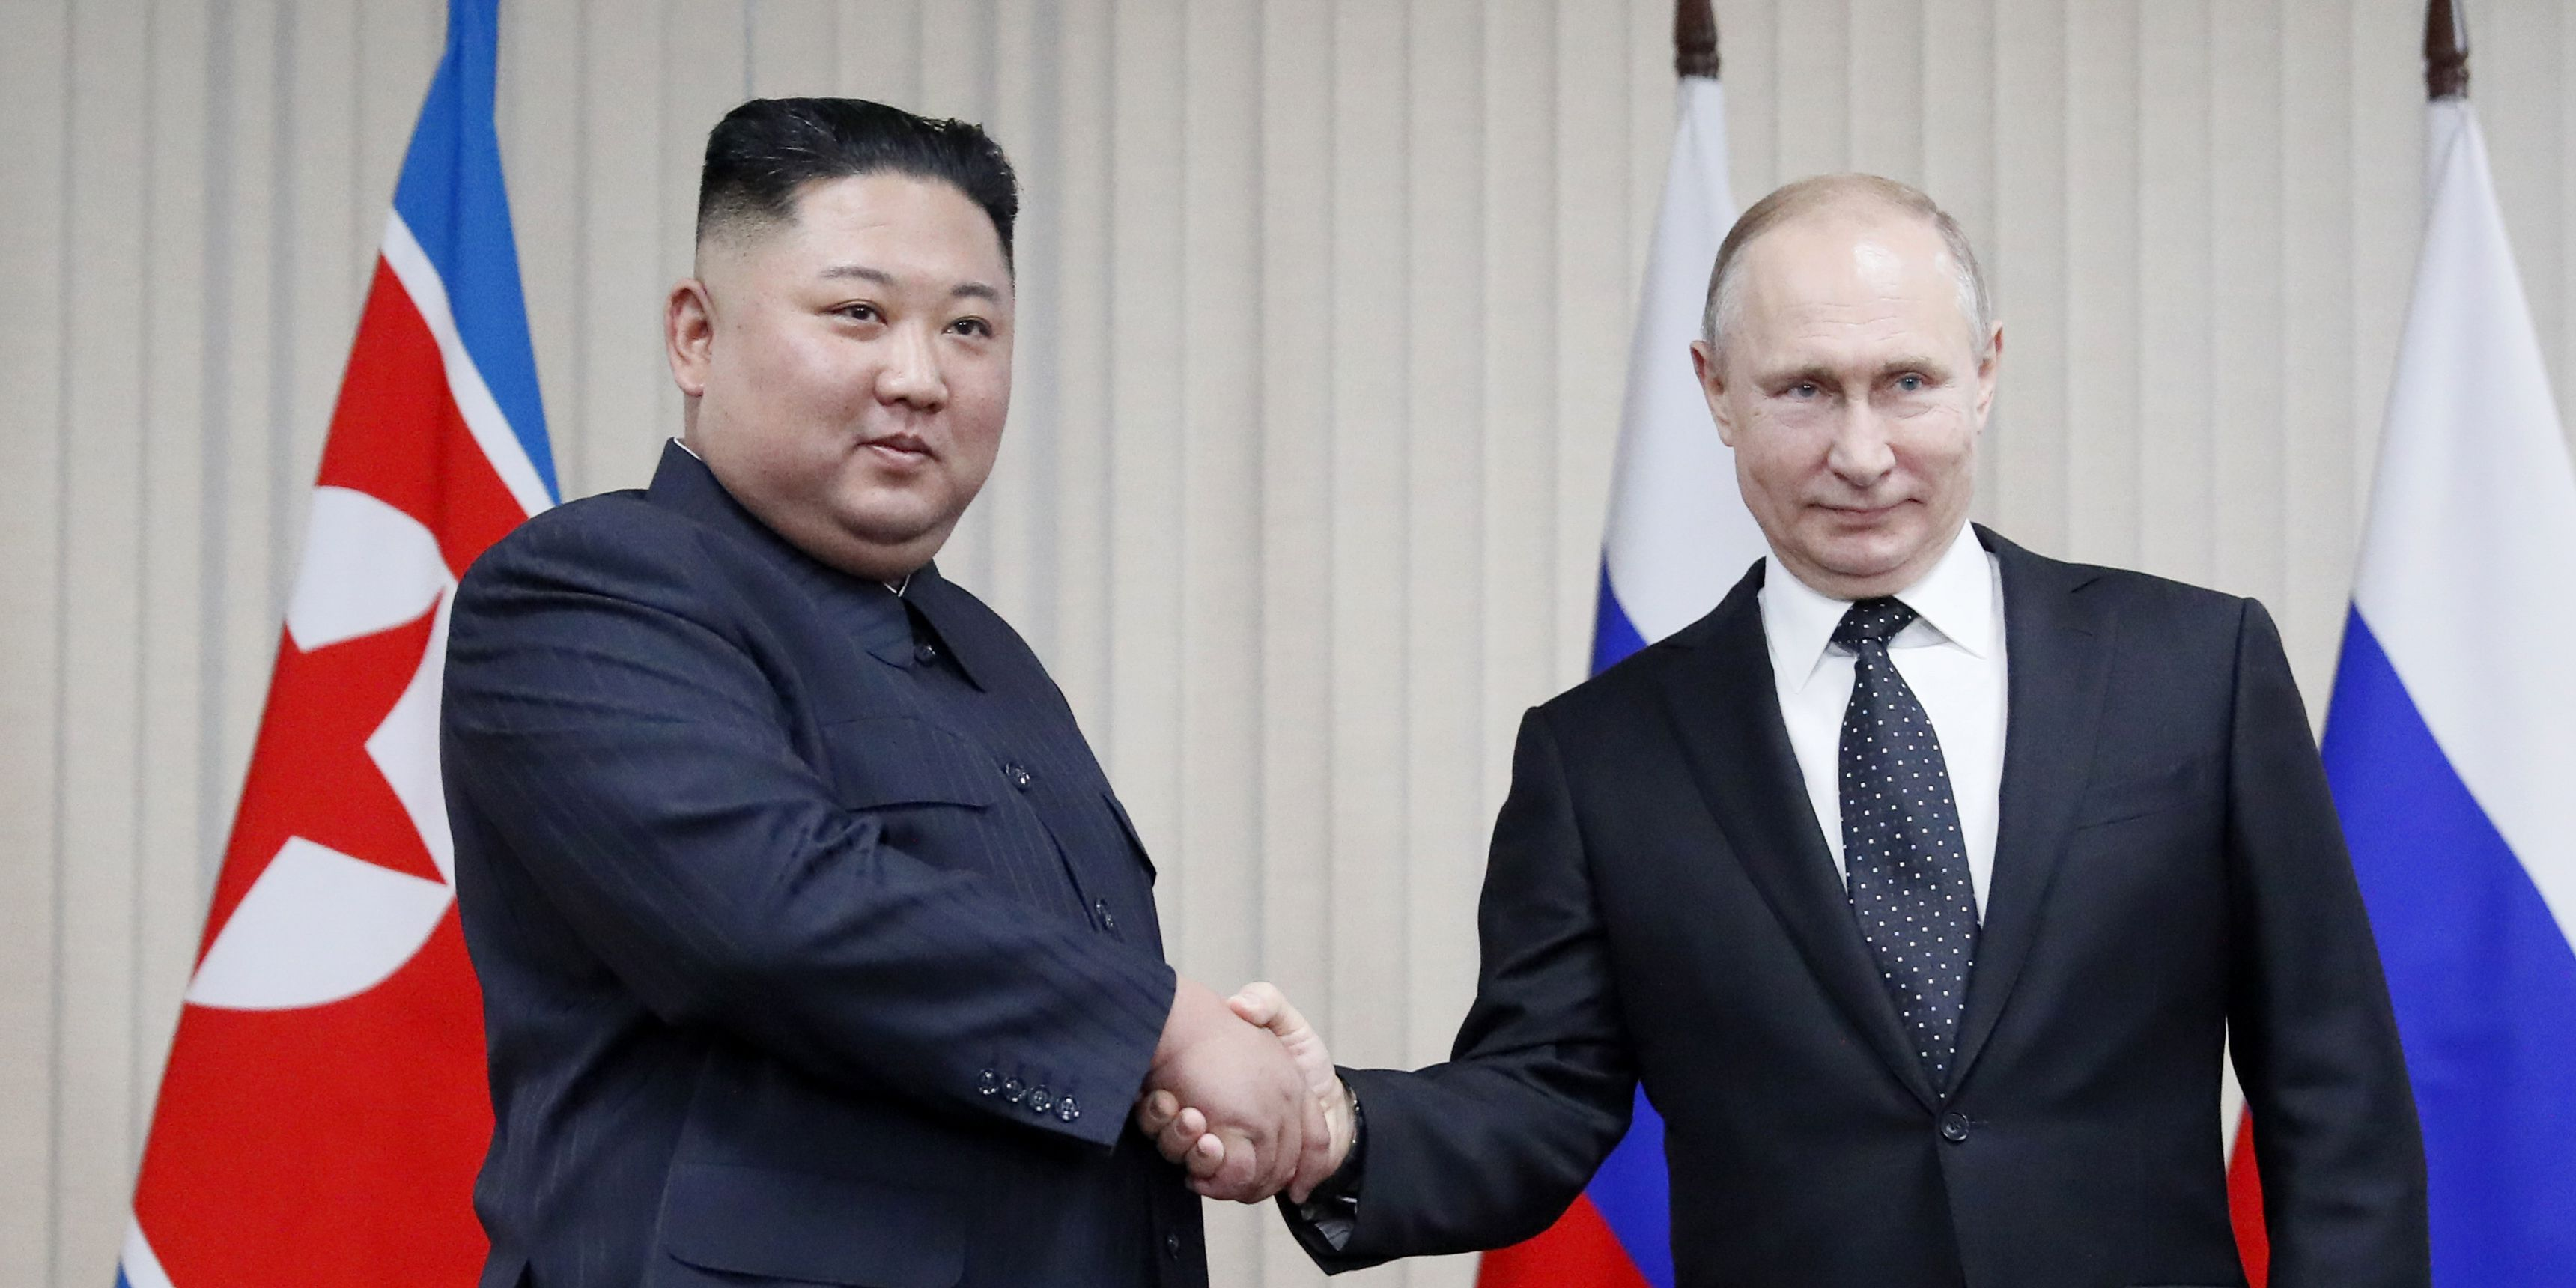 Putin, Kim discuss how to break North Korean nuclear standoff